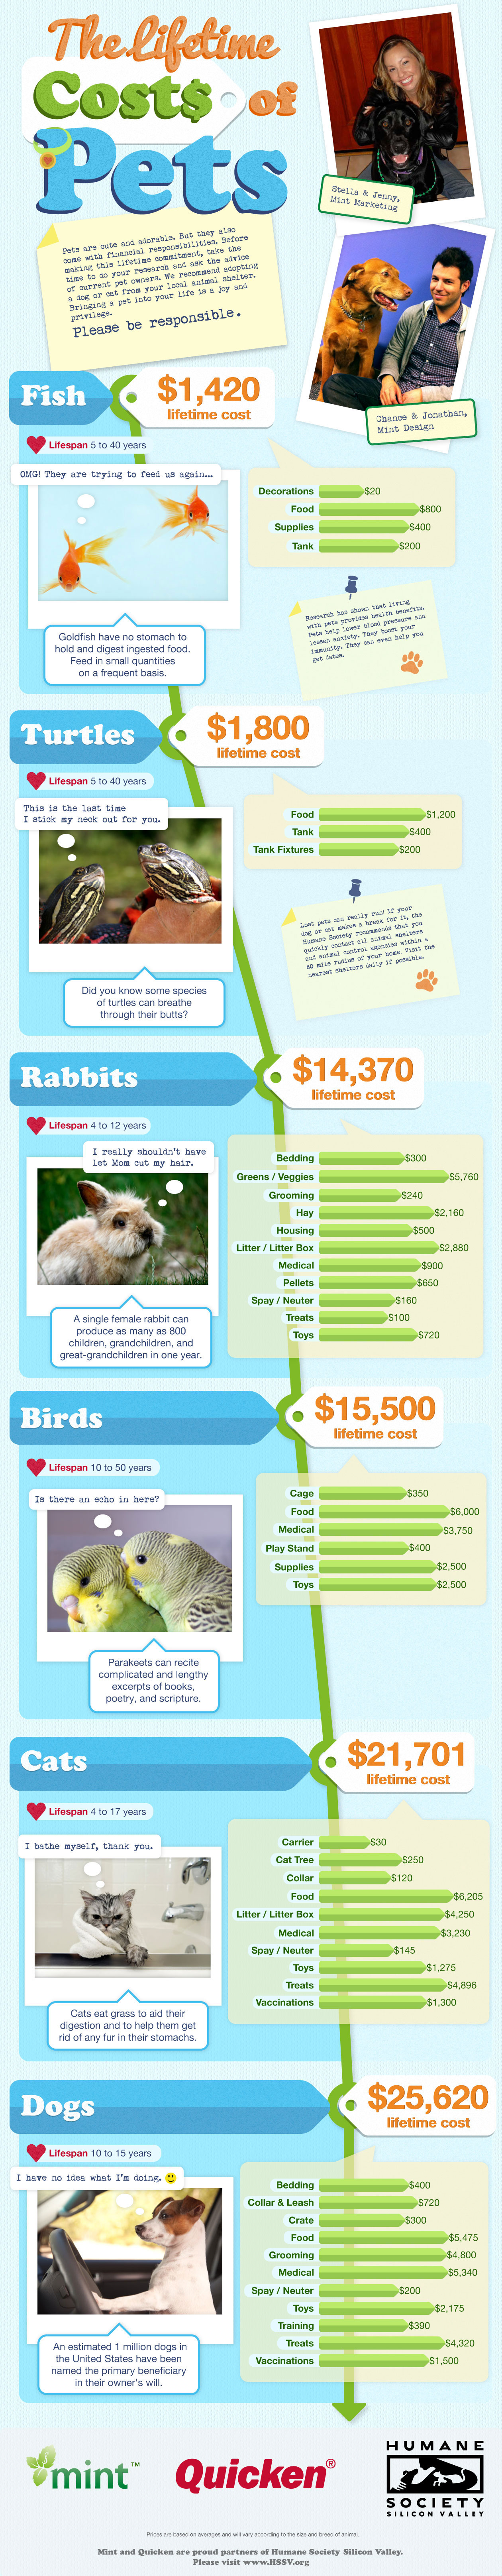 the-lifetime-costs-of-pets-infographic